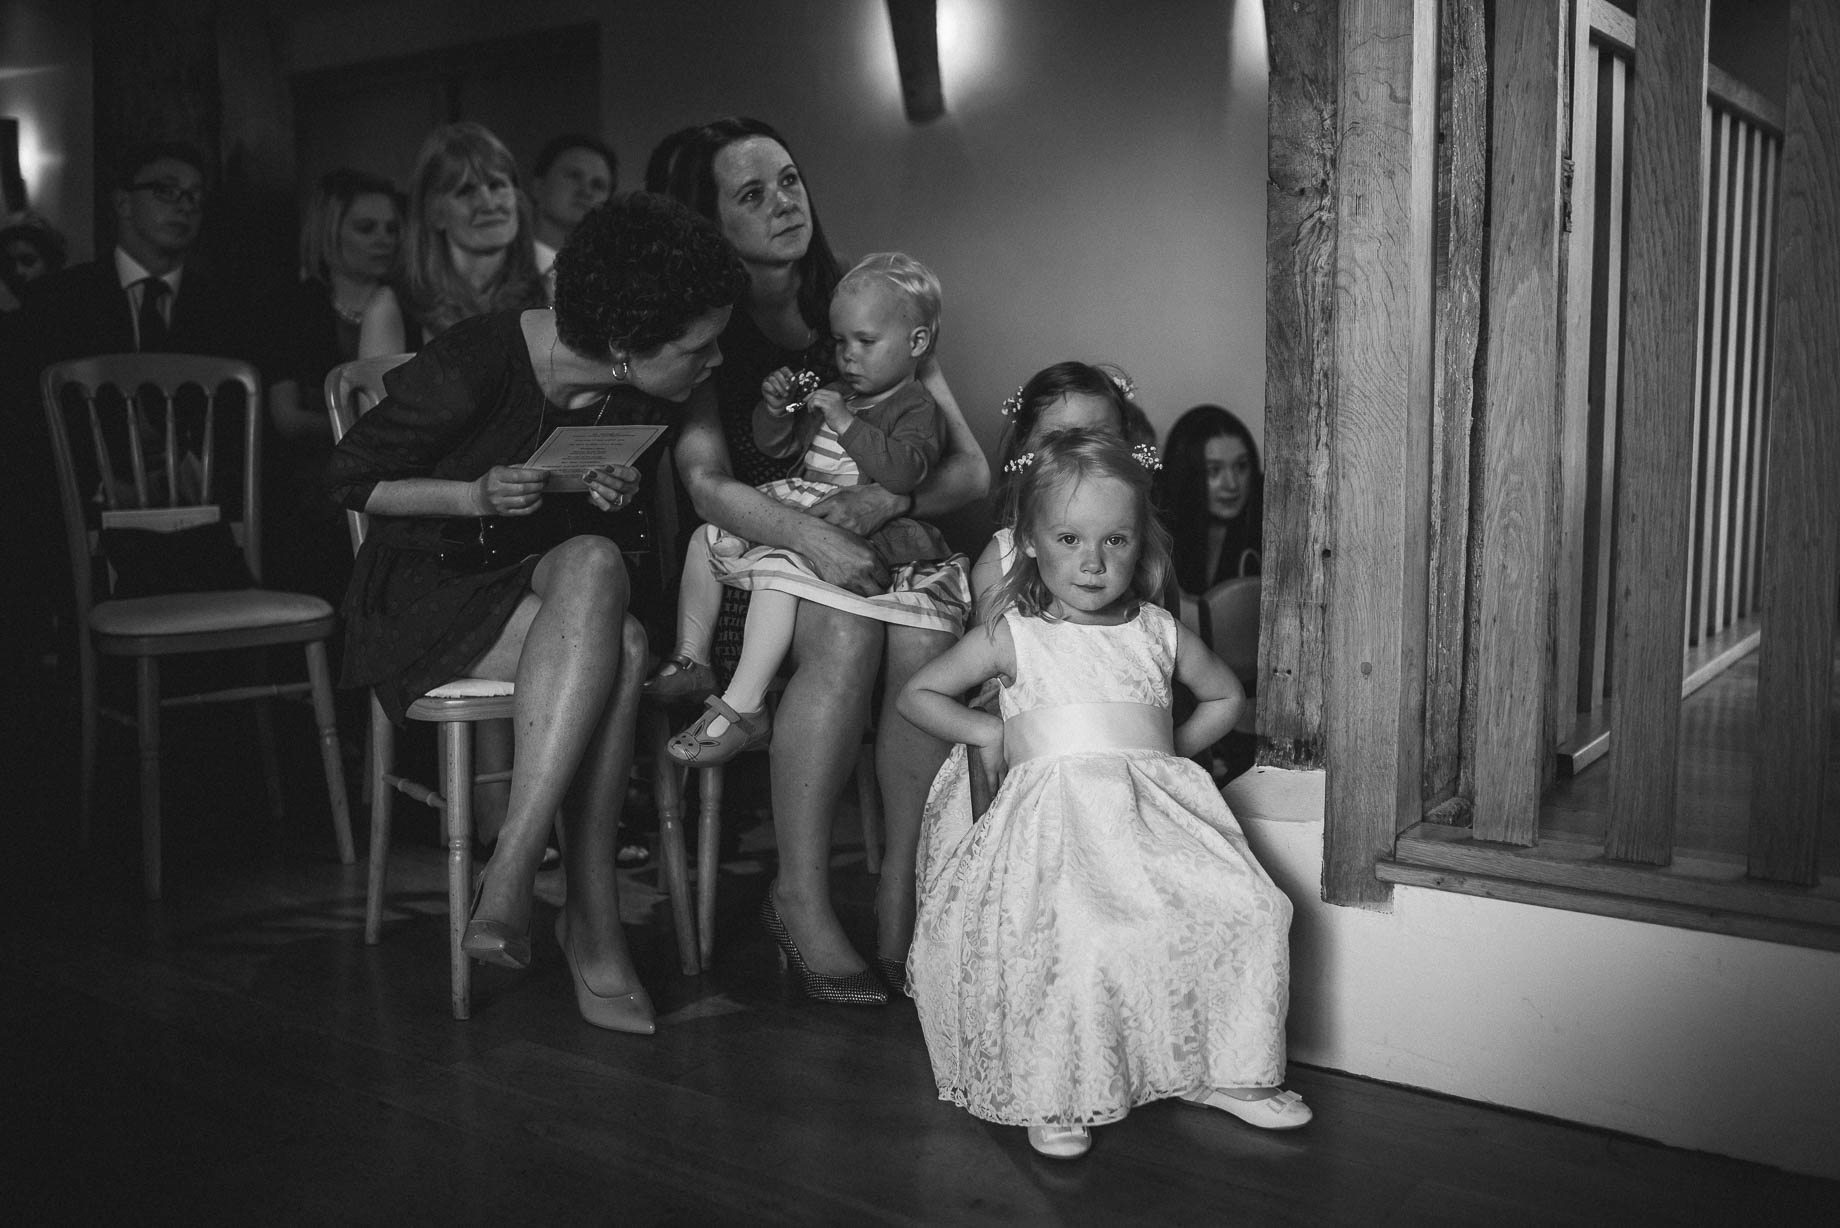 Bury Court Barn wedding photography by Guy Collier - Heather and Pat (47 of 170)